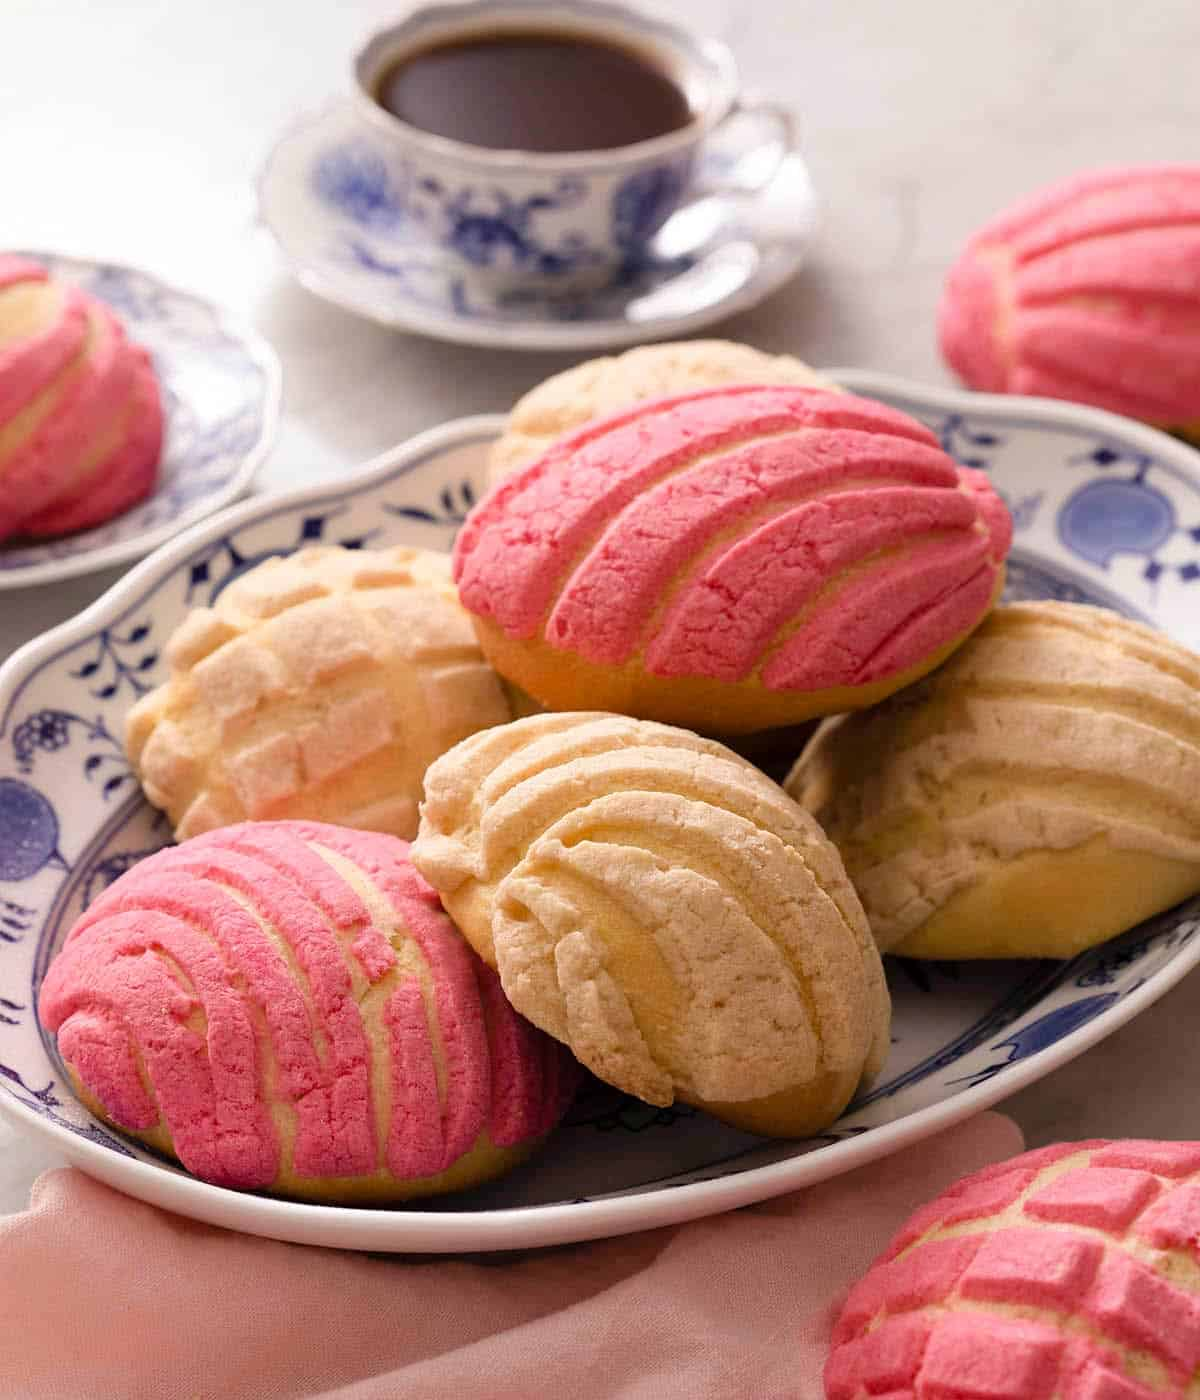 Pan Dulce on a blue serving plate with a cup of coffee in the background